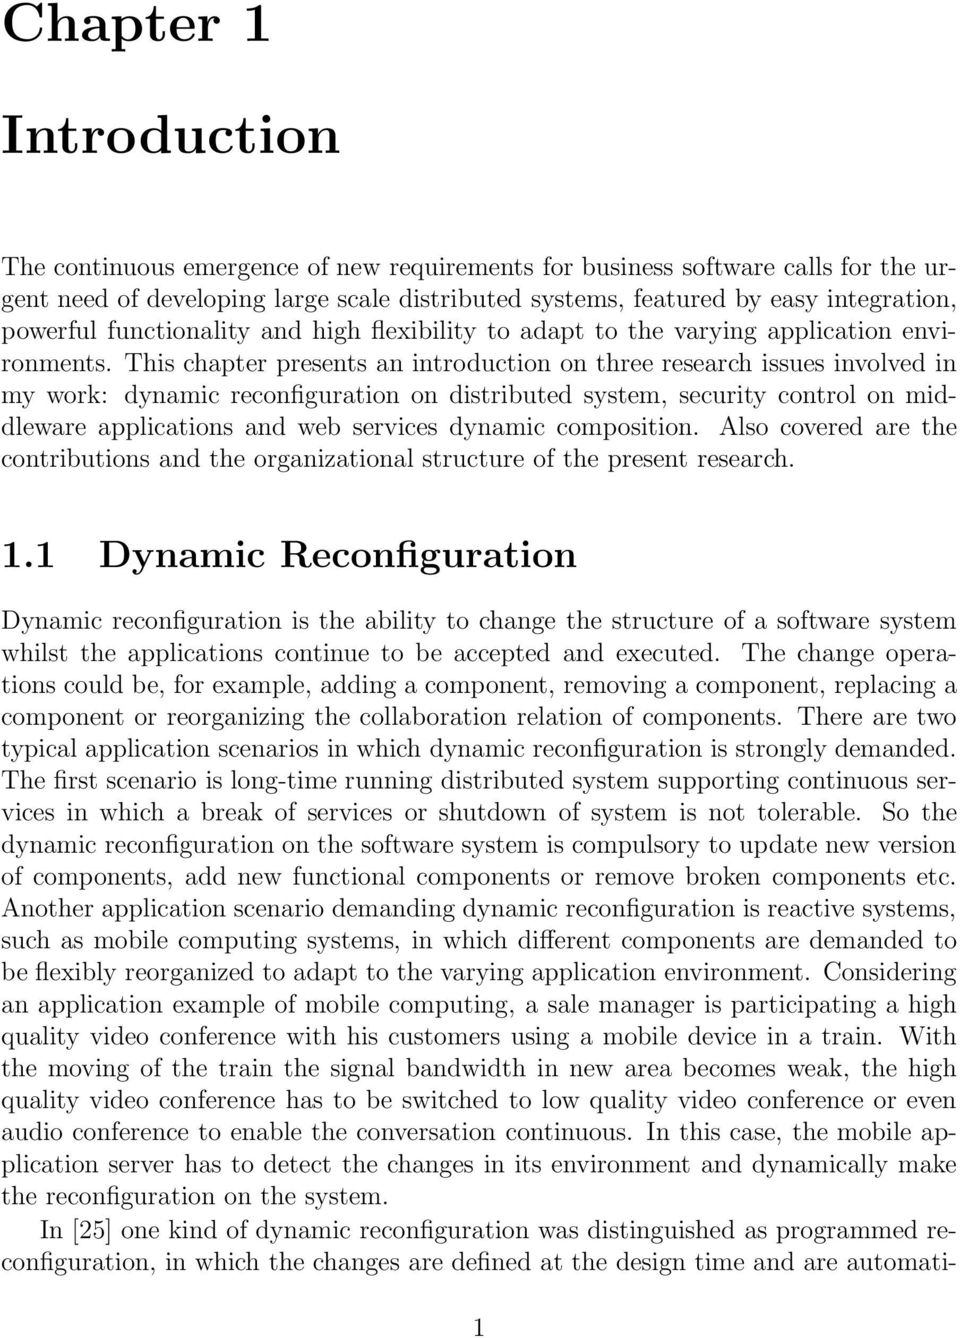 This chapter presents an introduction on three research issues involved in my work: dynamic reconfiguration on distributed system, security control on middleware applications and web services dynamic